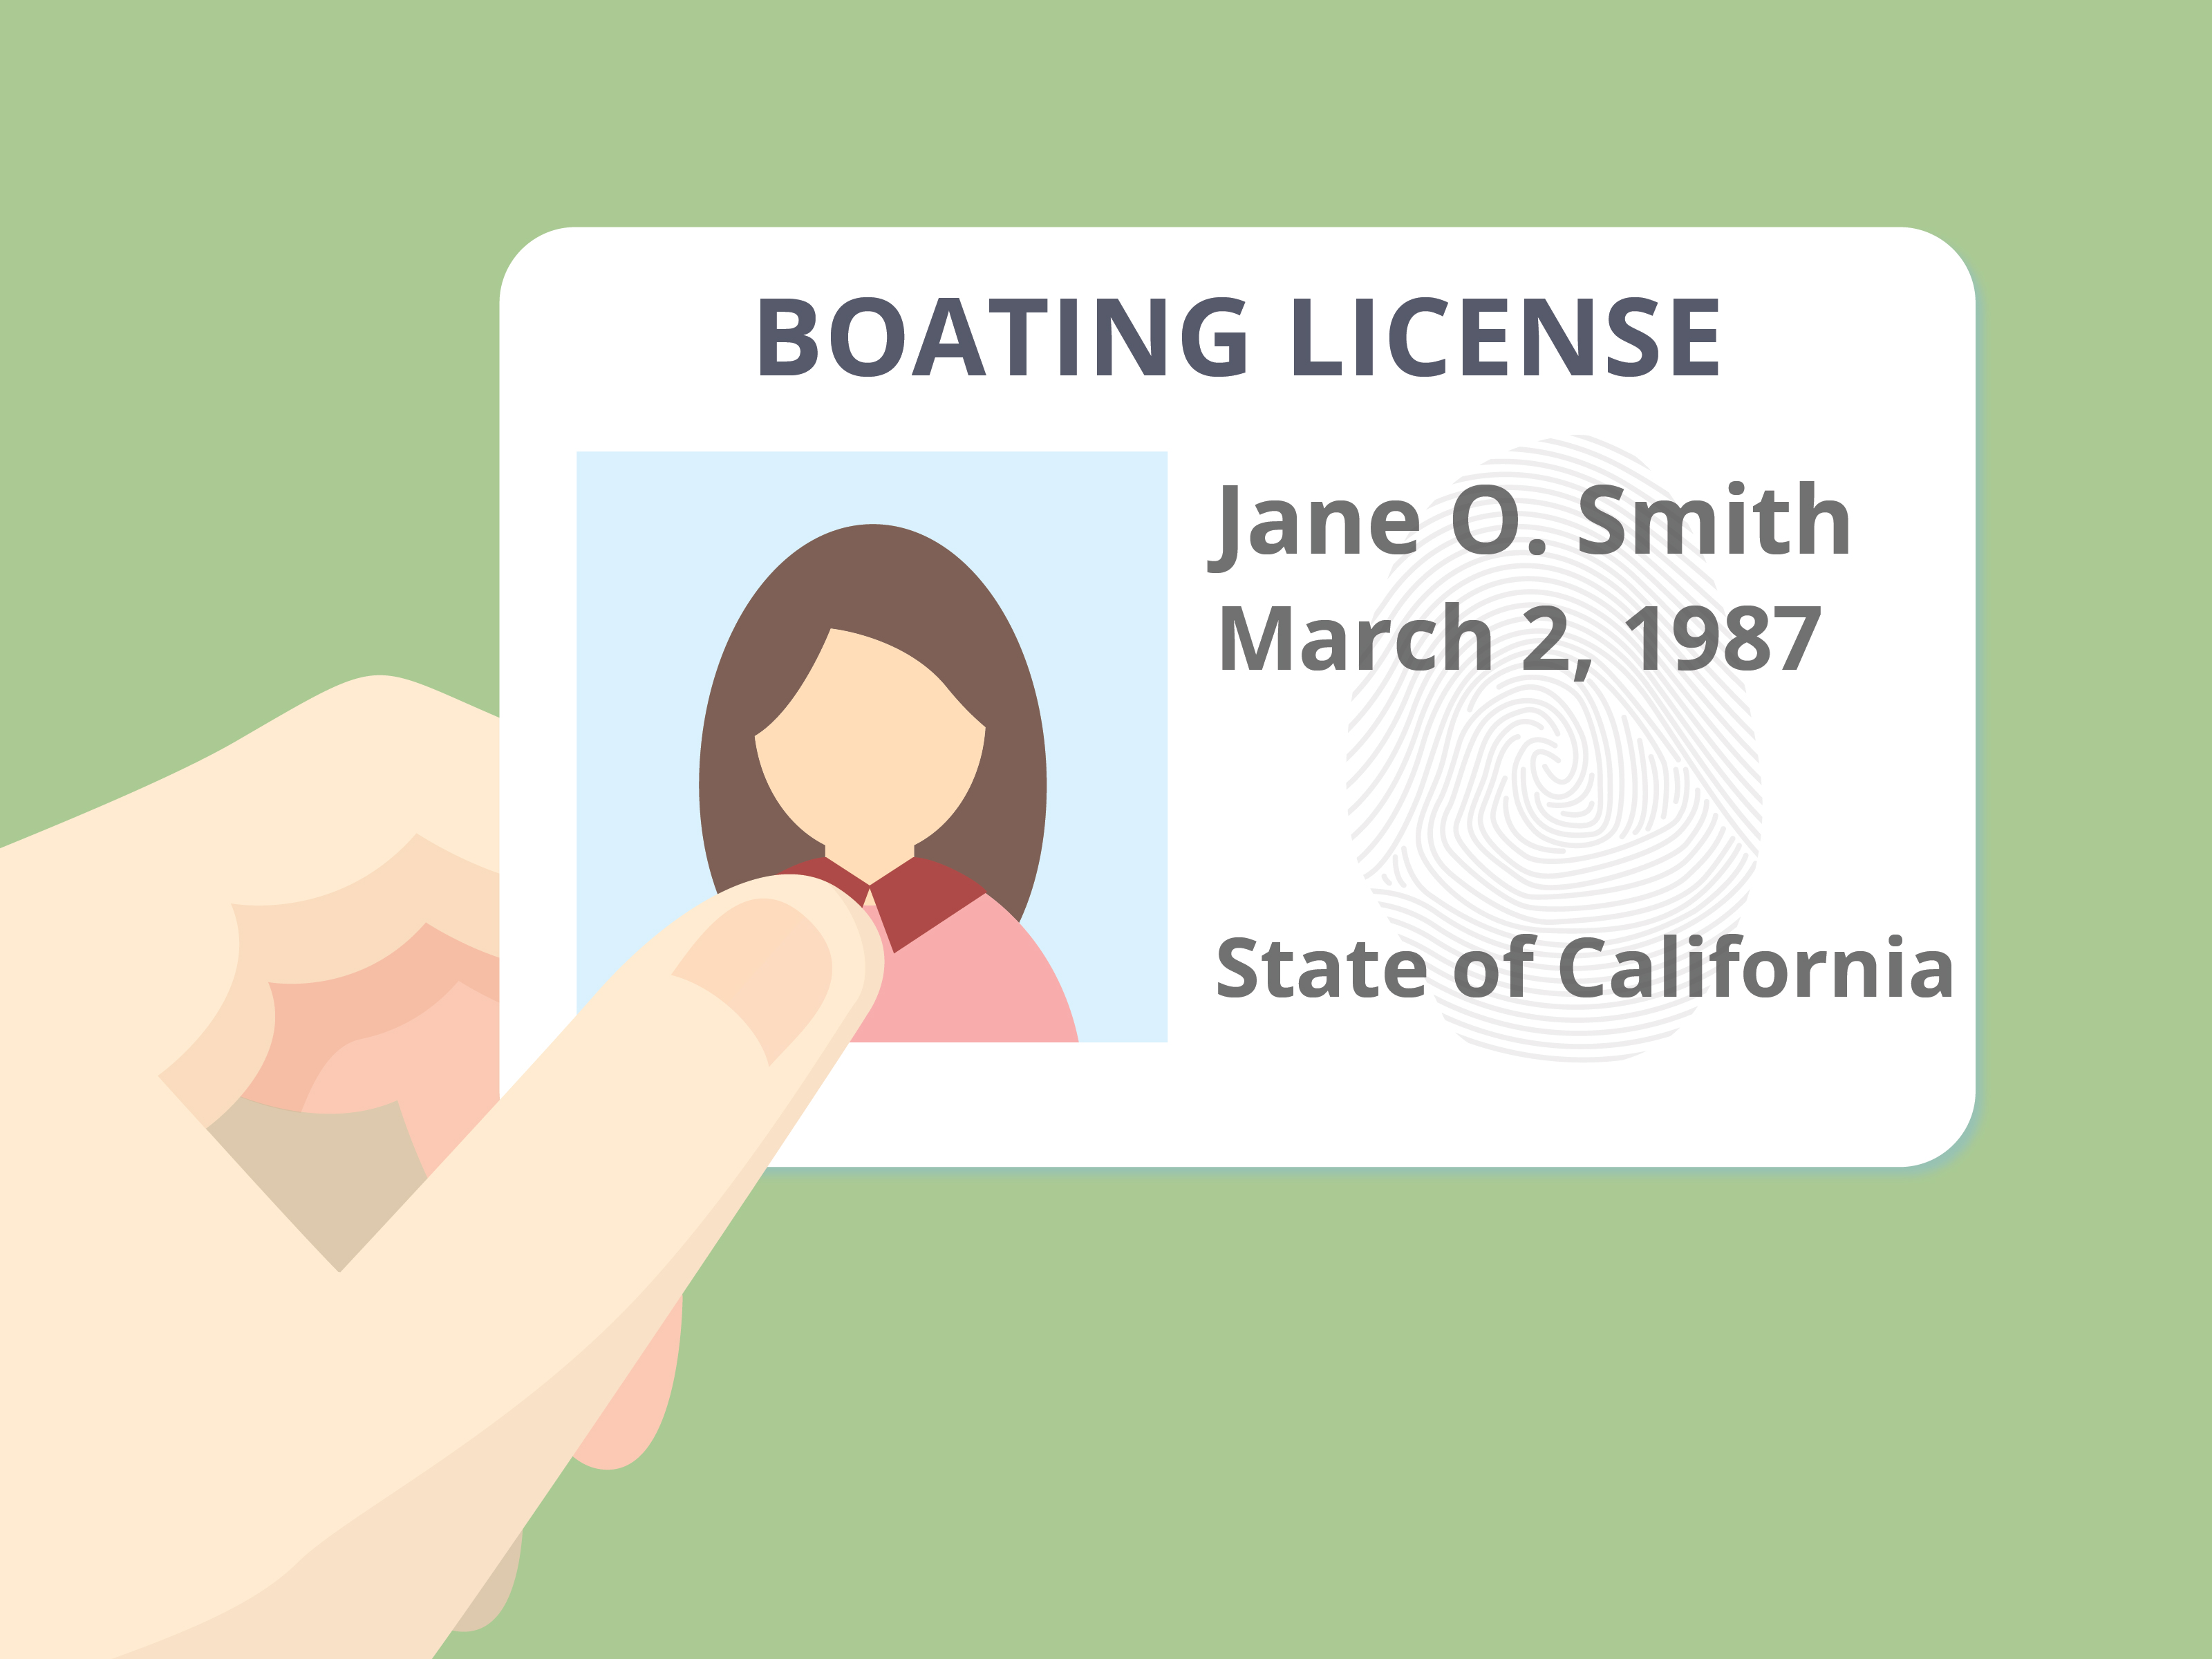 obtaining a manual licence at 17